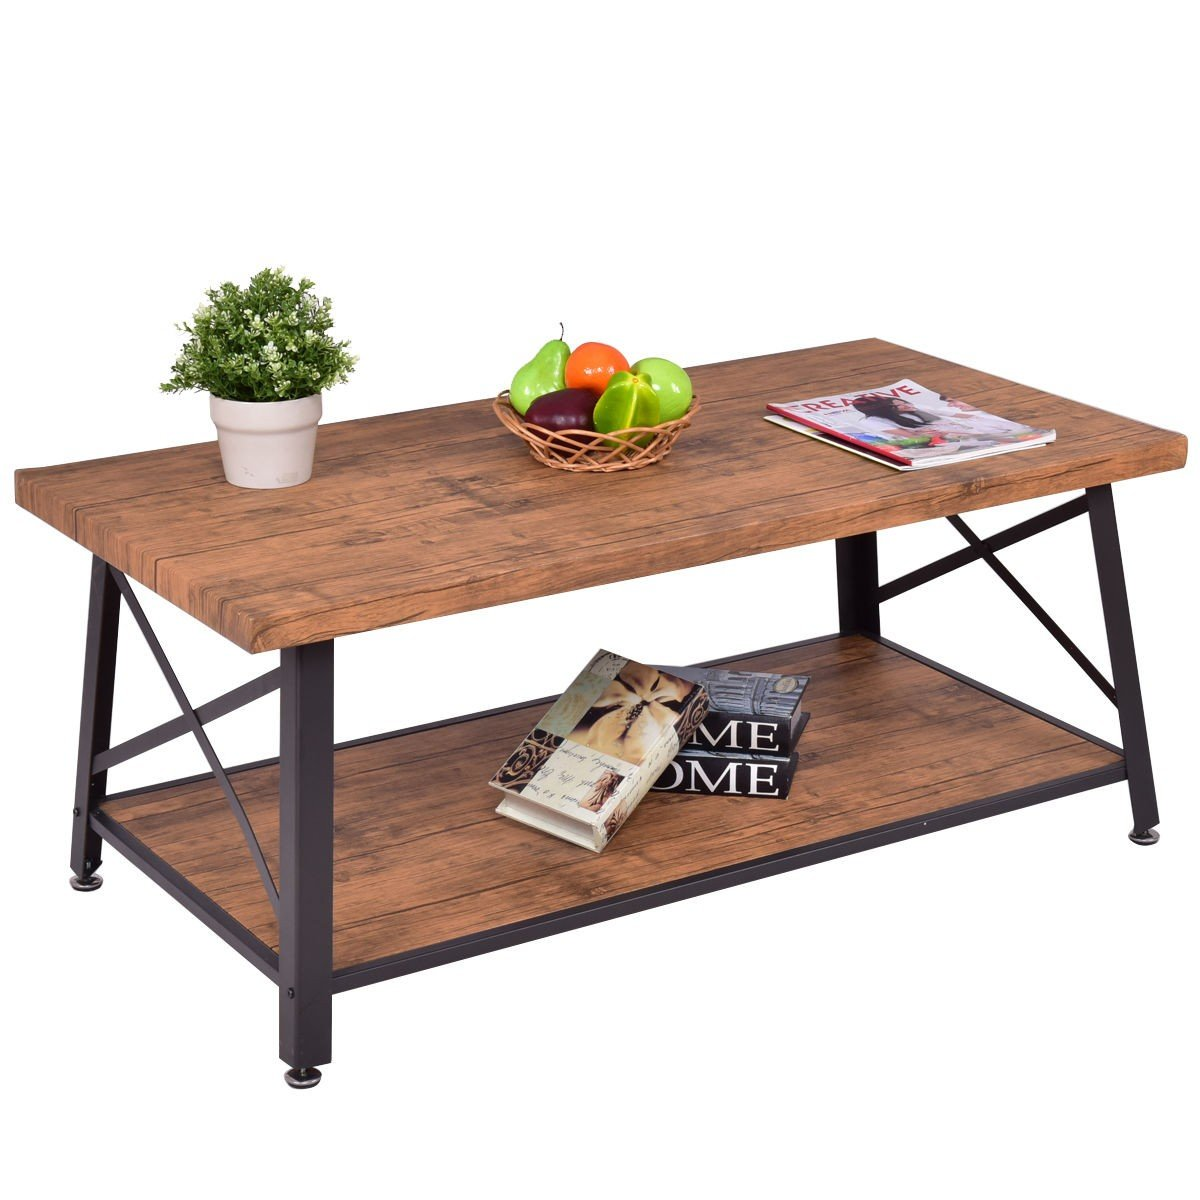 Rectangular metal frame wood coffee table with storage shelf by rectangular metal frame wood coffee table with storage shelf geotapseo Image collections